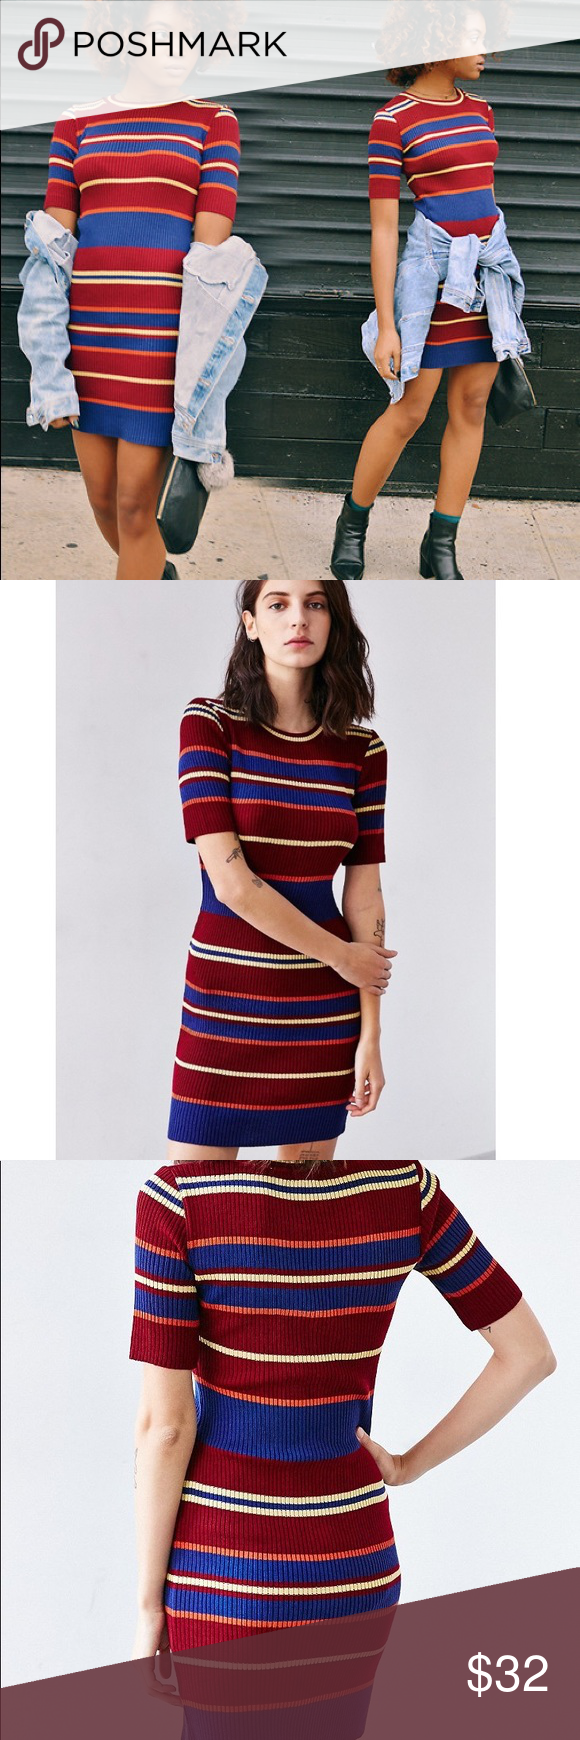 c66c0f8350 Flash Sale⚡️BDG variegated stripe sweater dress BDG variegated stripe sweater  dress multi color. Never worn w/o tag. In good condition just didn't fit .